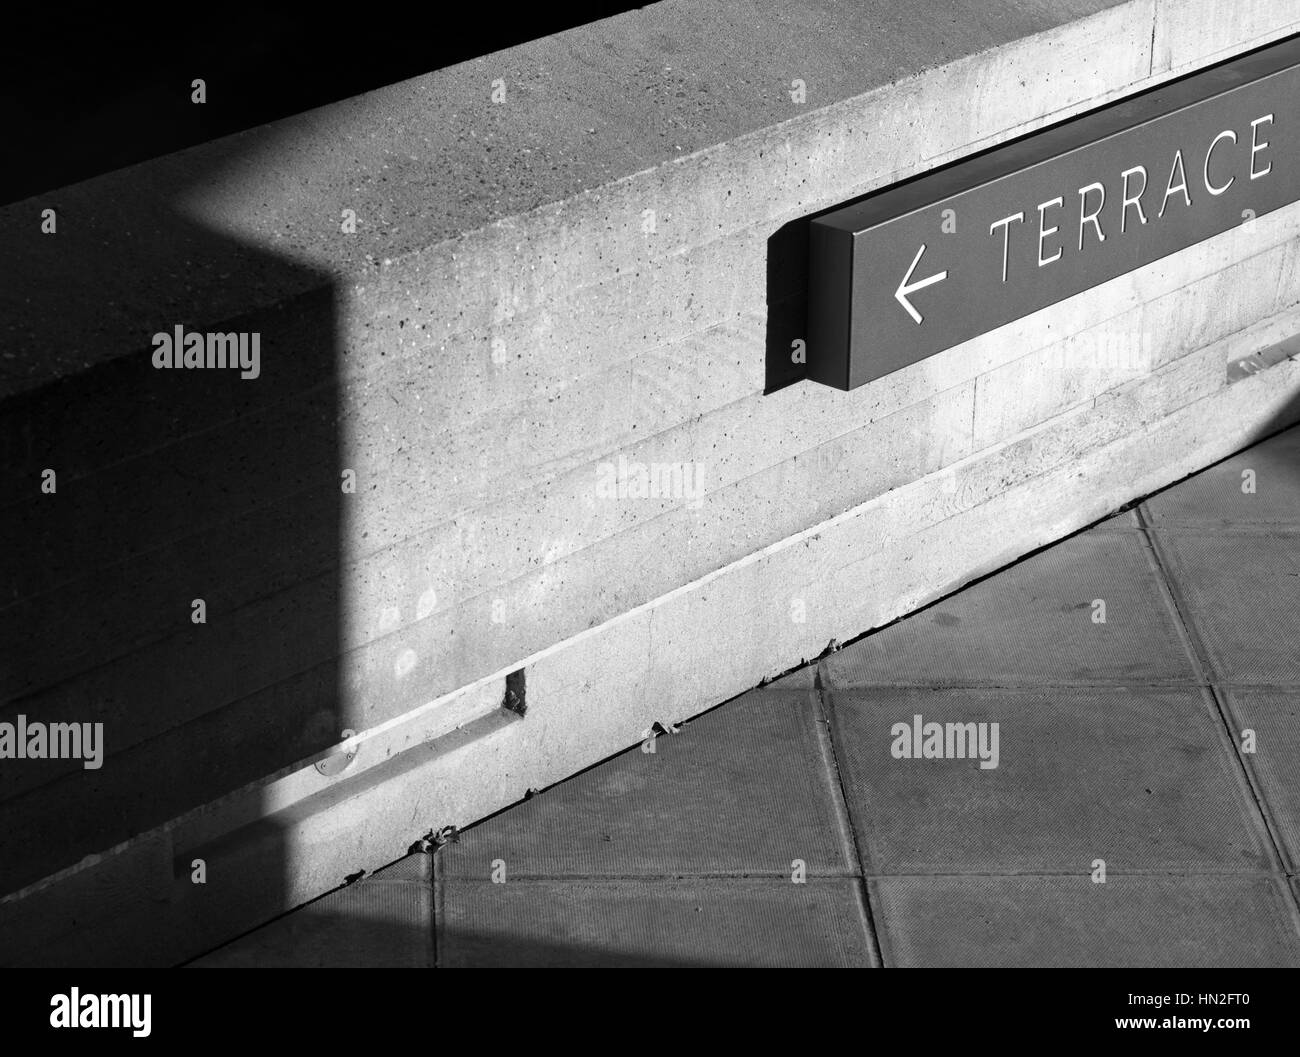 Sign pointing to a terrace, London, UK - Stock Image